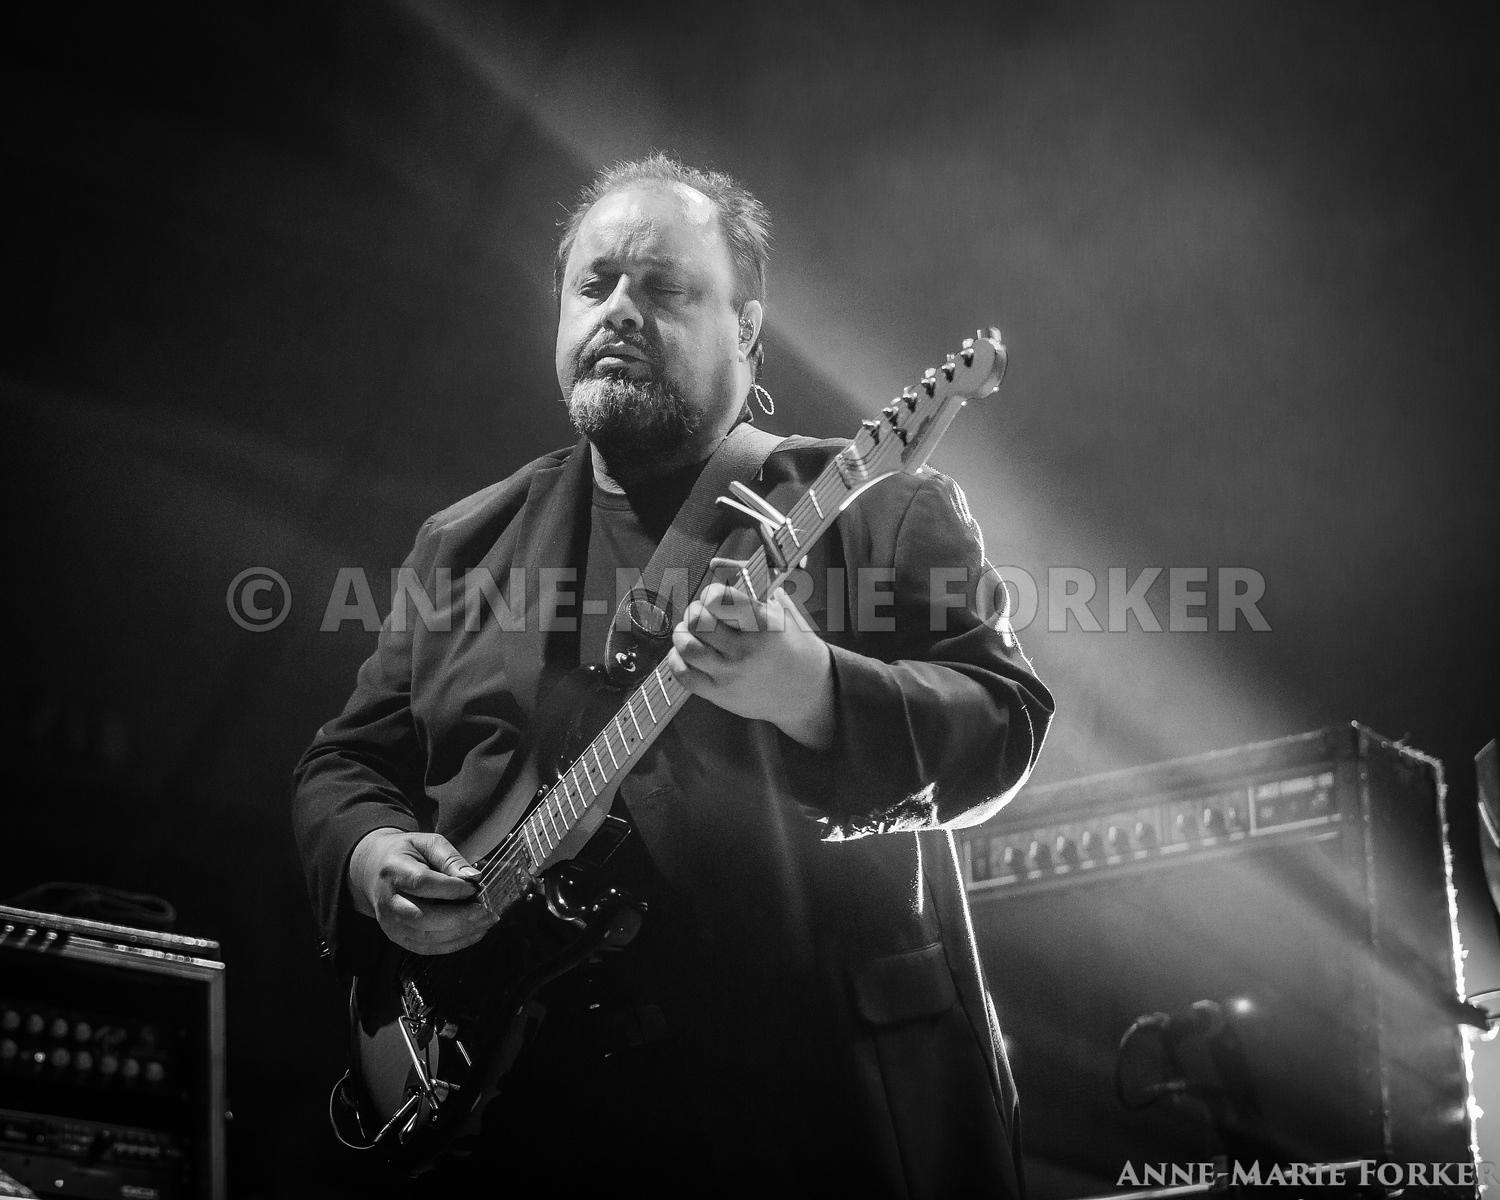 Marillion_Ulster_Hall_-_AM_Forker-8558